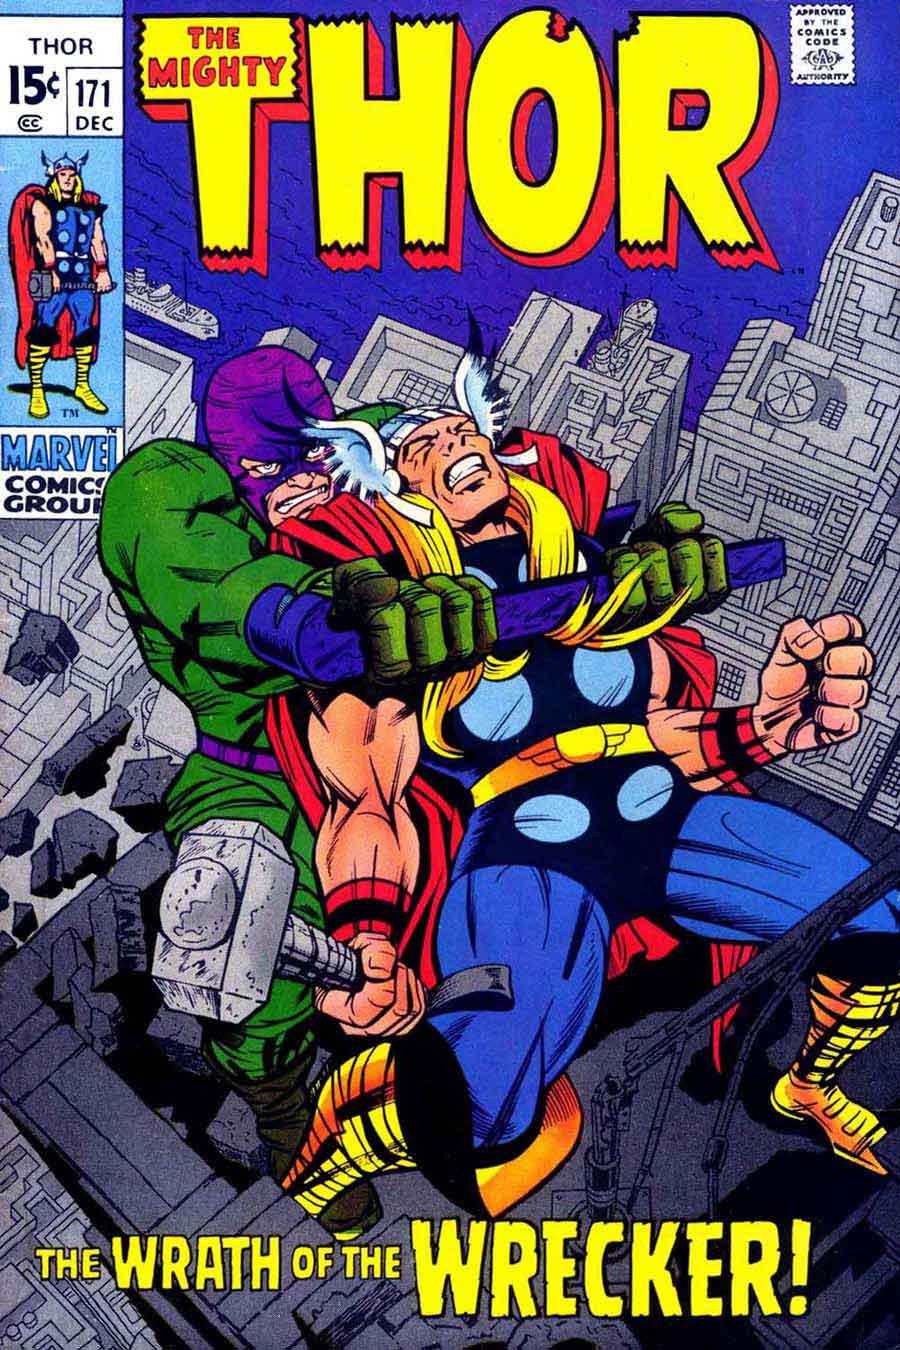 Thor v1 #171 marvel 1970s bronze age comic book cover art by Jack Kirby